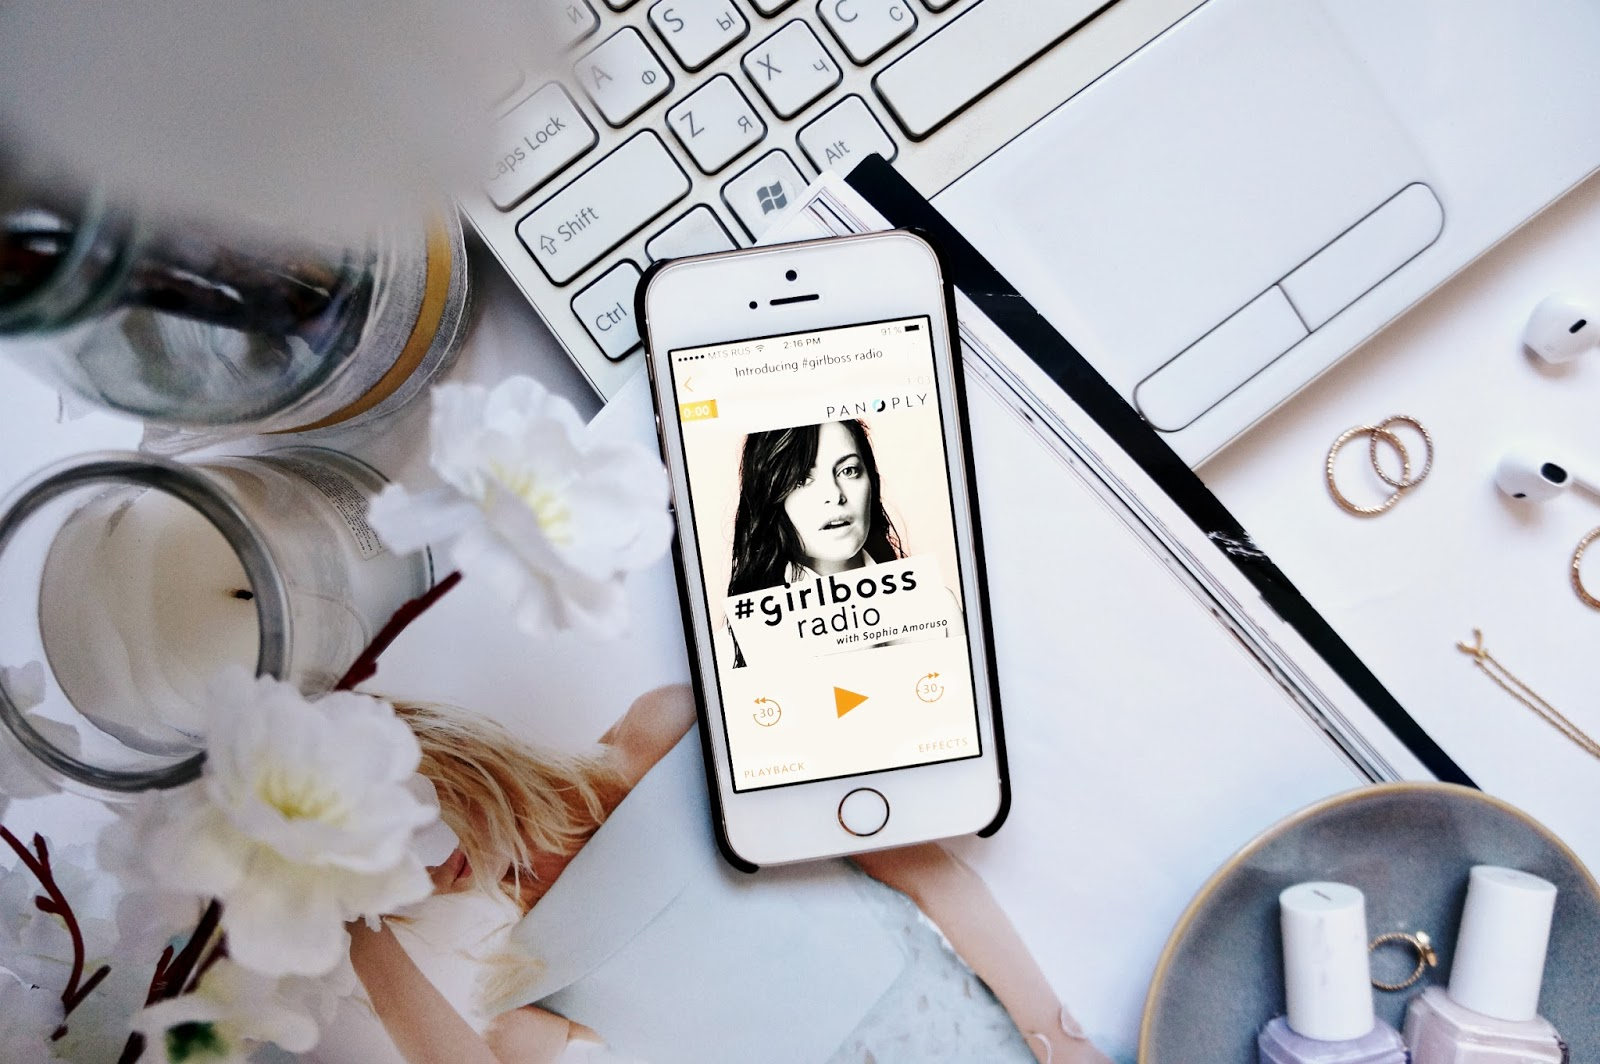 Podcasts, Girlboss radio, Podcasts for bloggers